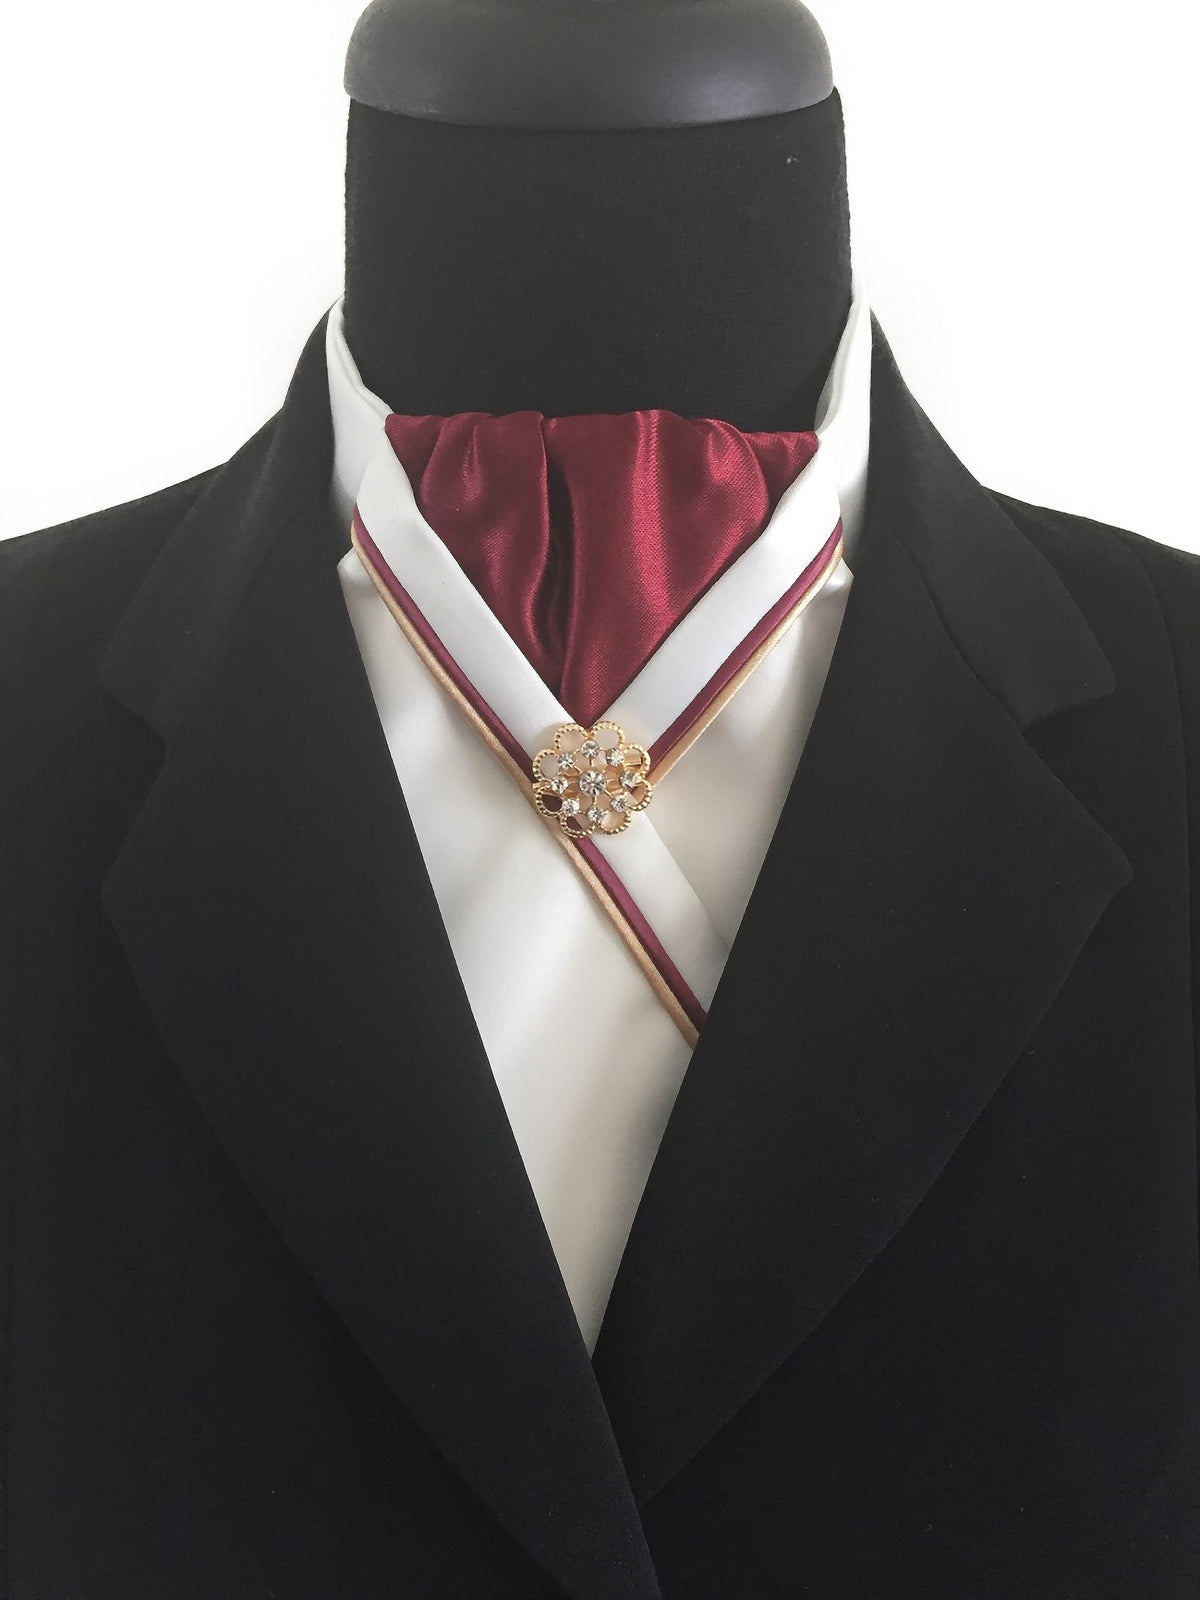 Cream Stock Tie with Burgundy Trim